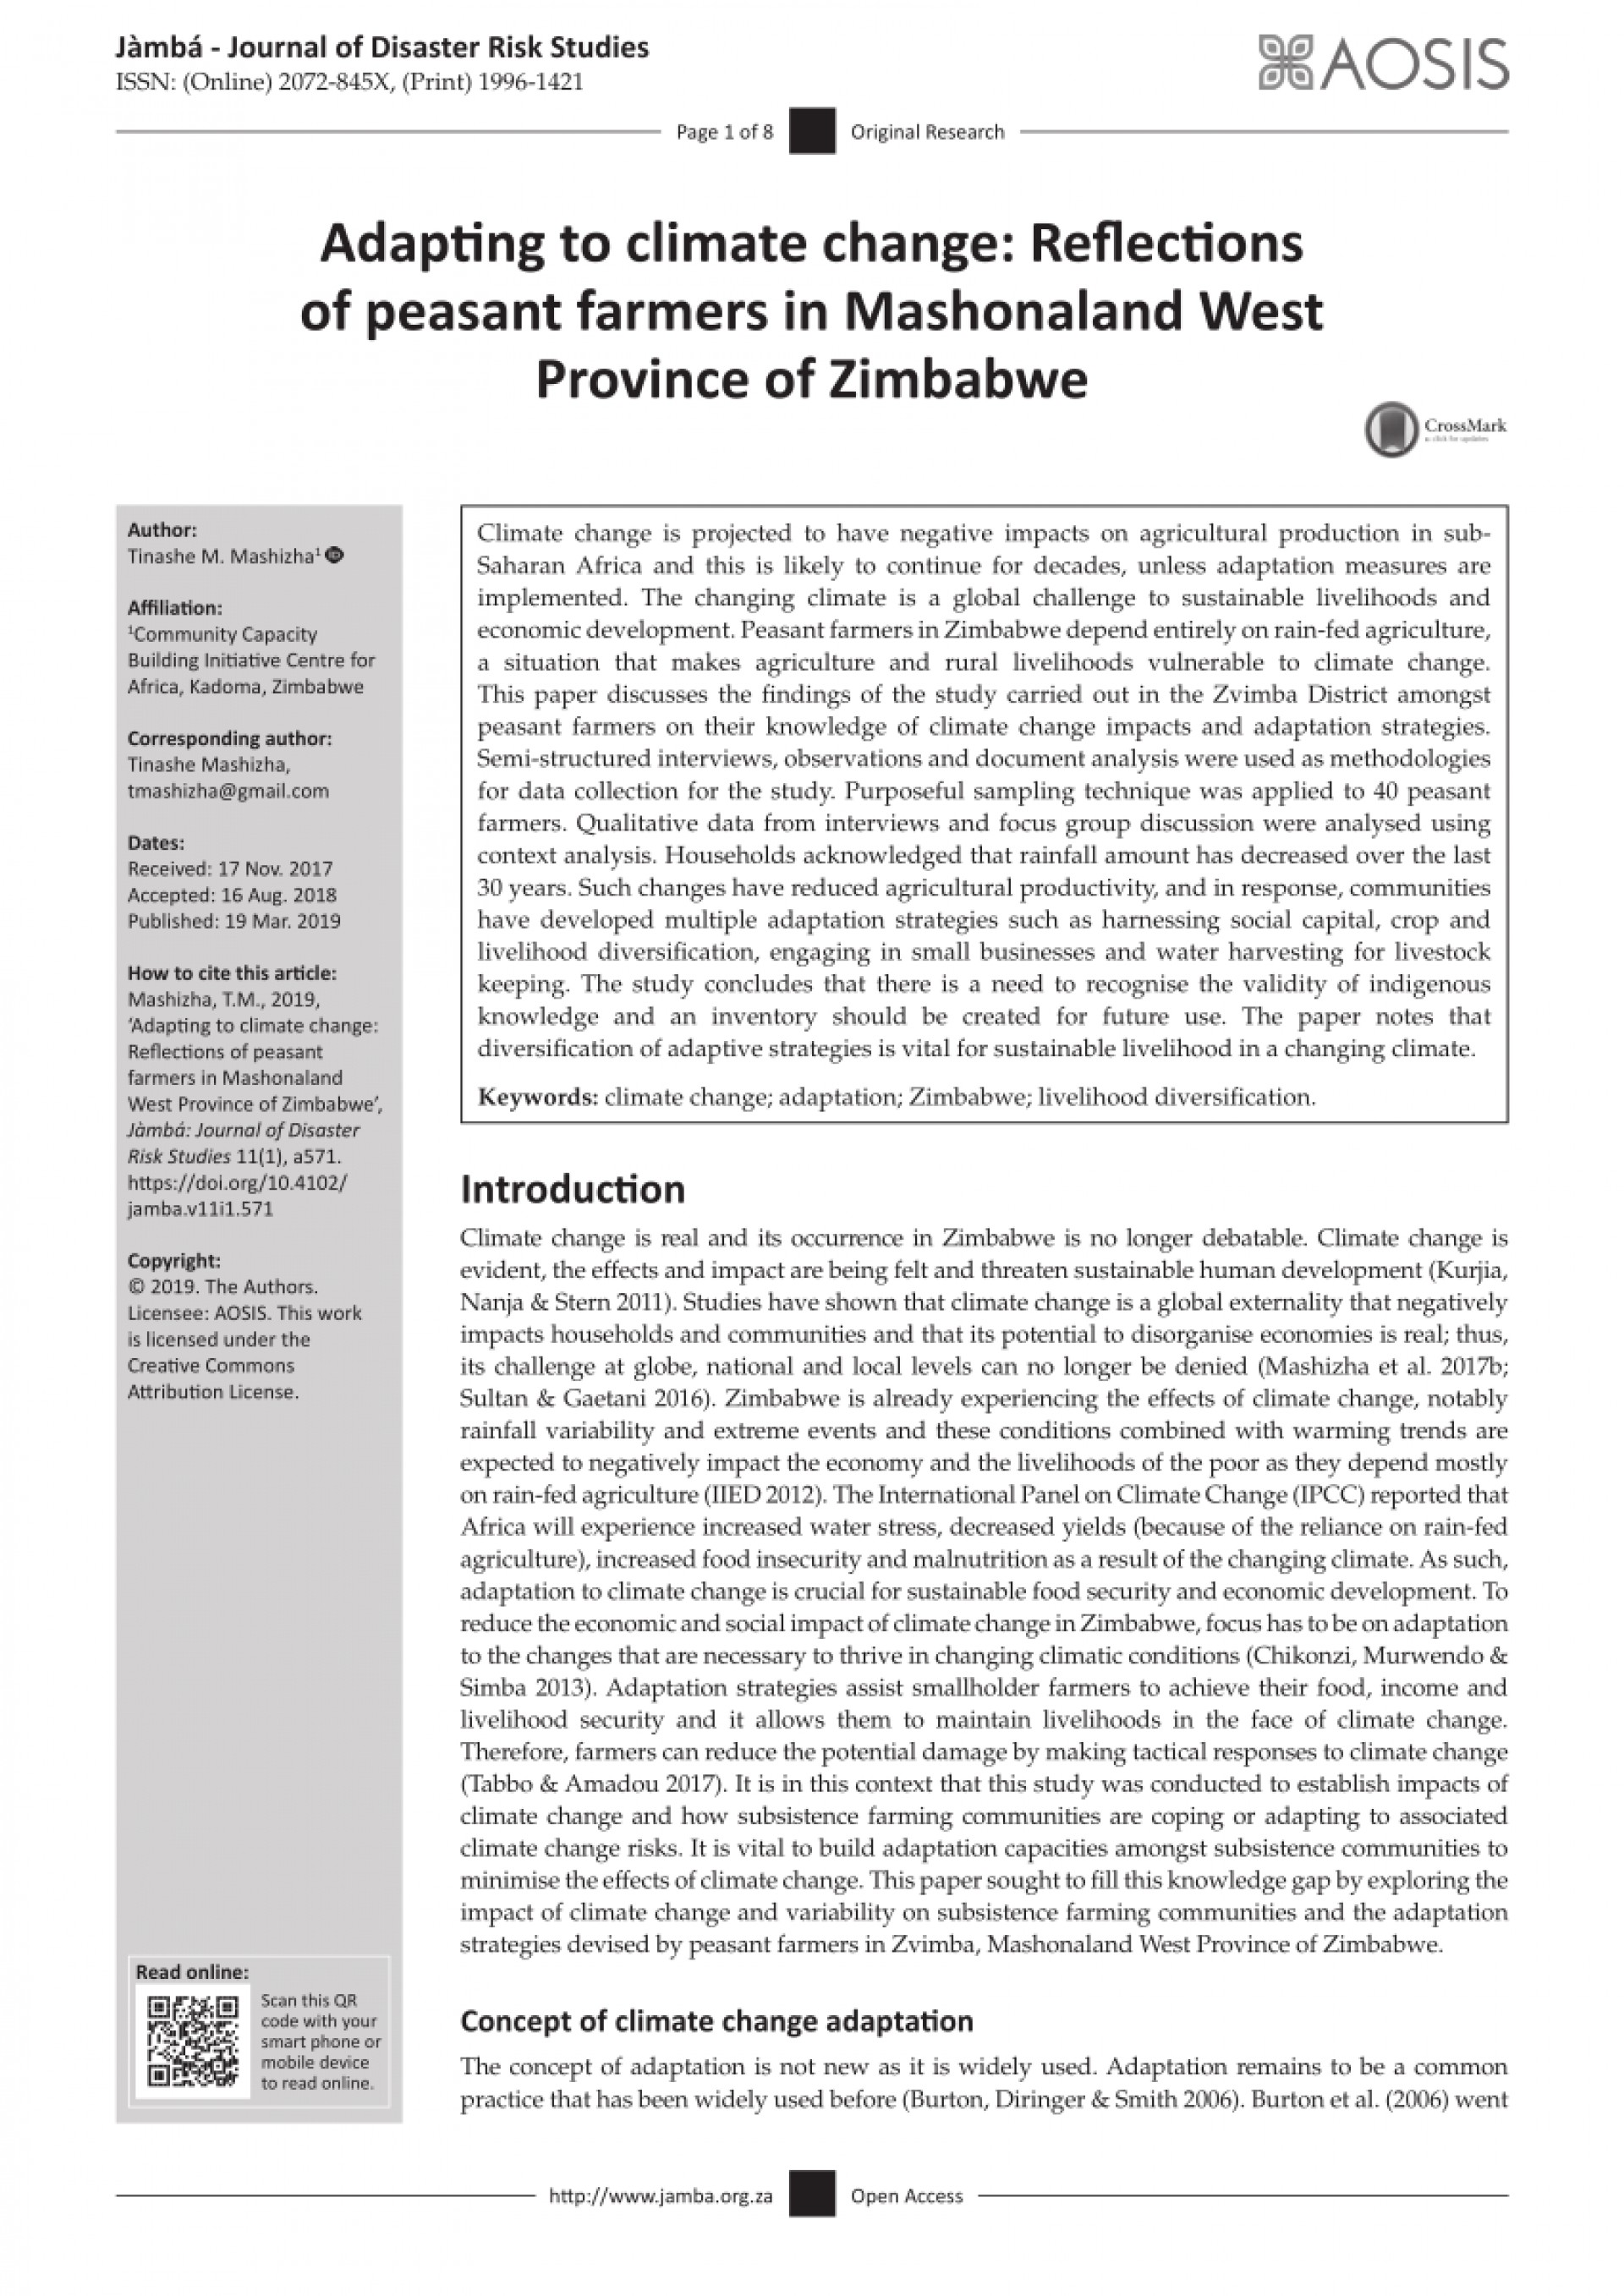 005 Research Paper Pdf Papers On Climate Change In Zimbabwe Imposing 1920